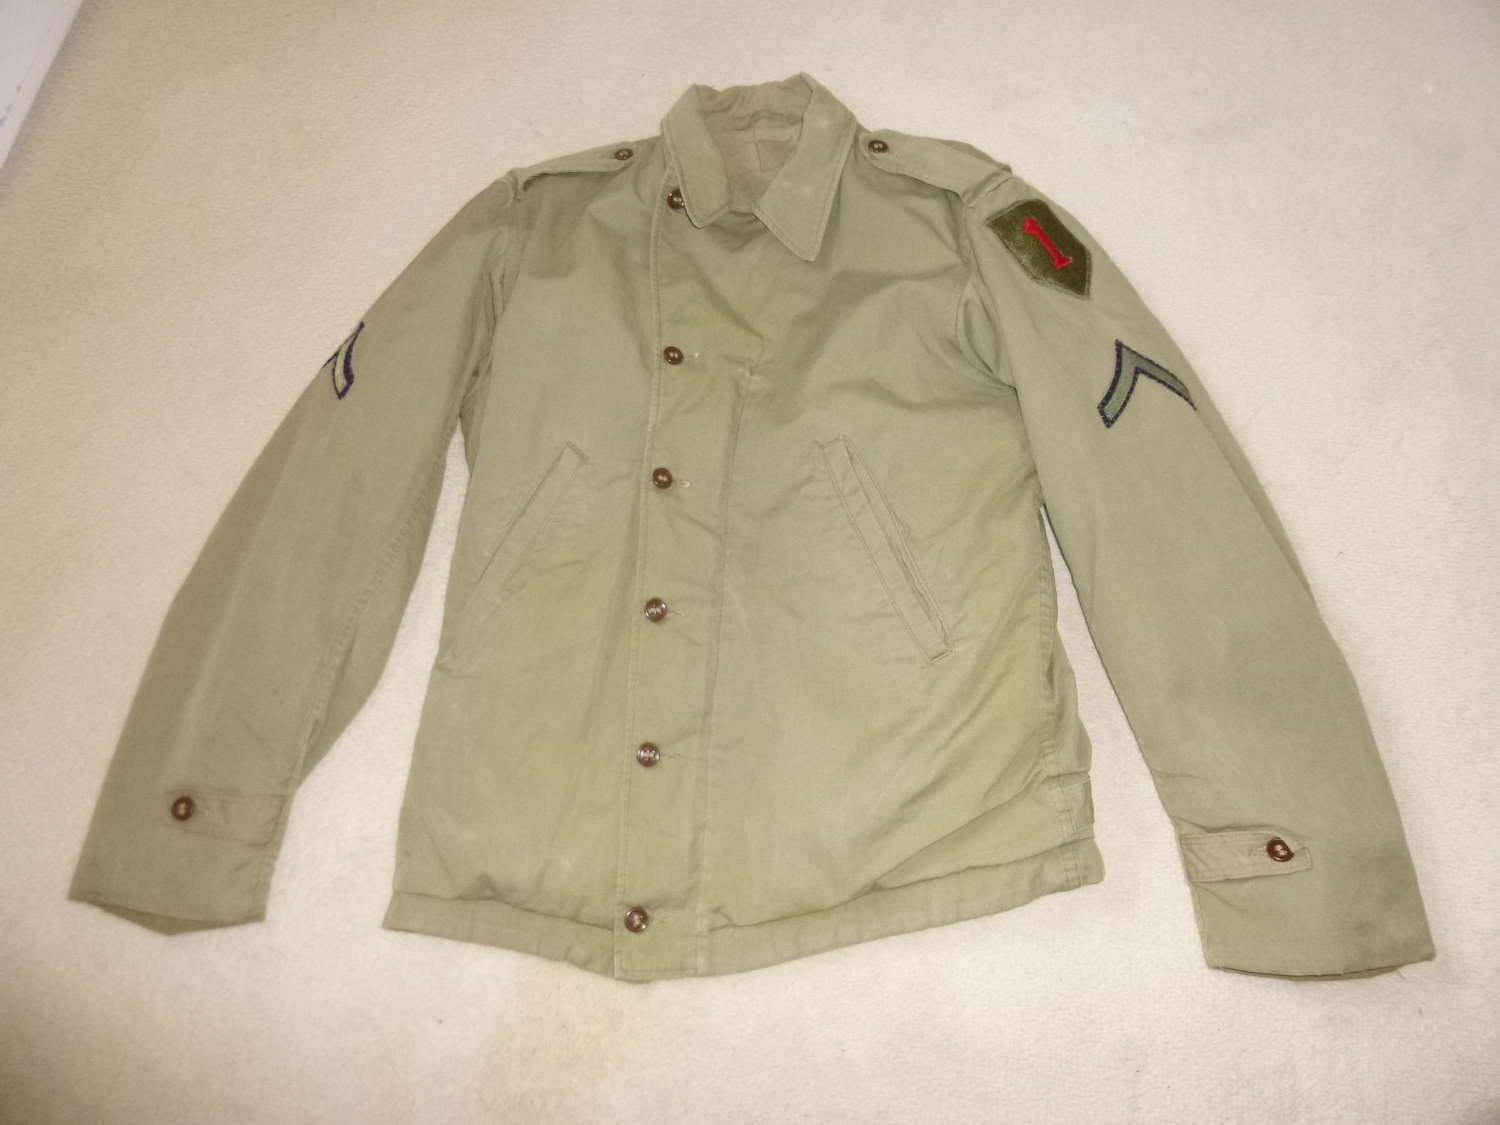 US army M41 parsons jacket, 1st Infantry division